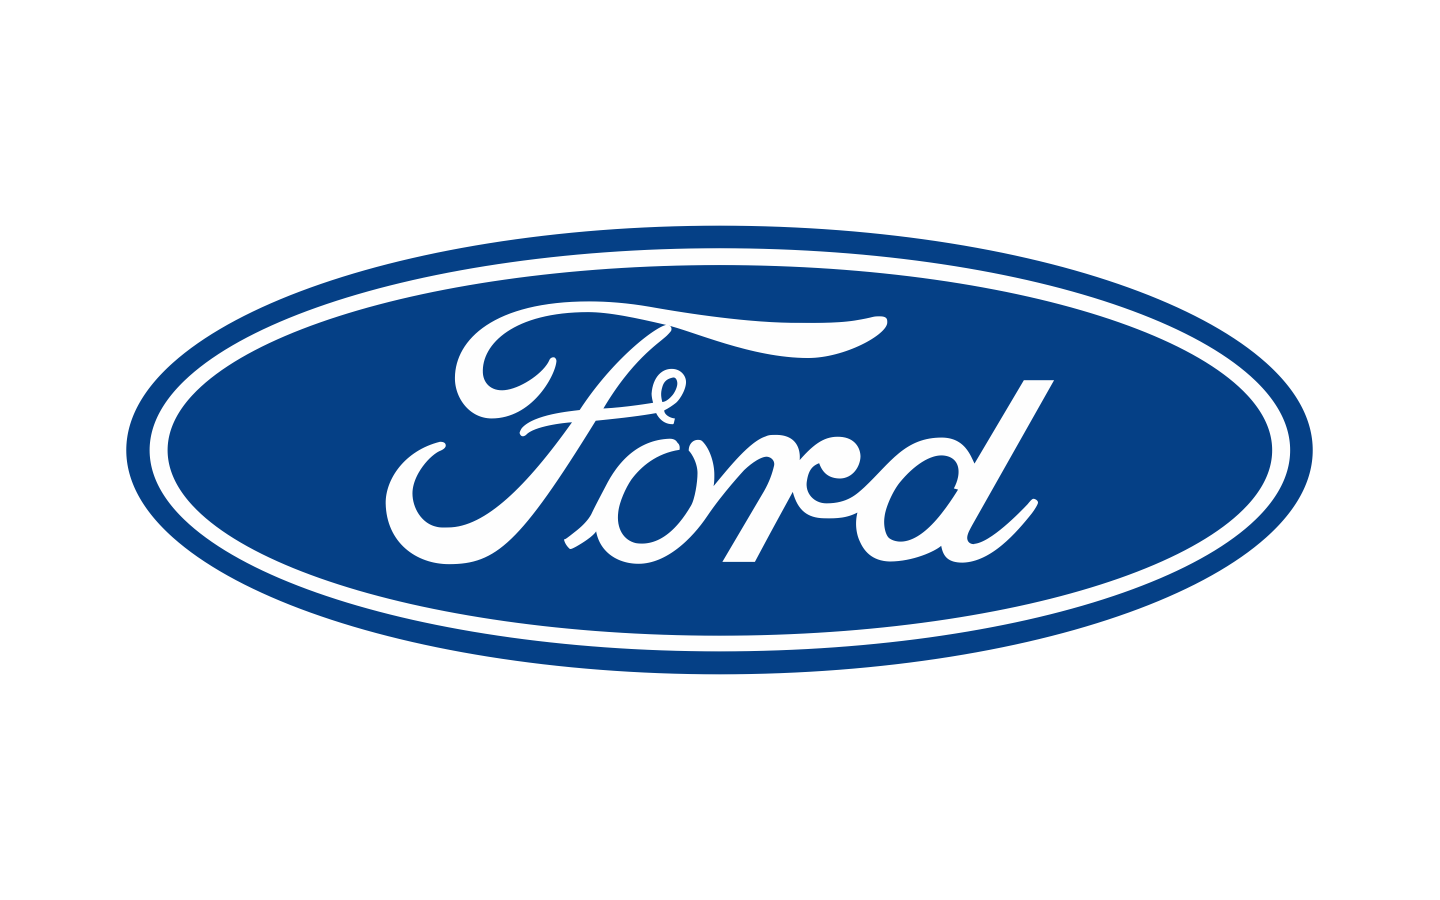 Ford-logo-1929-1440x900.png